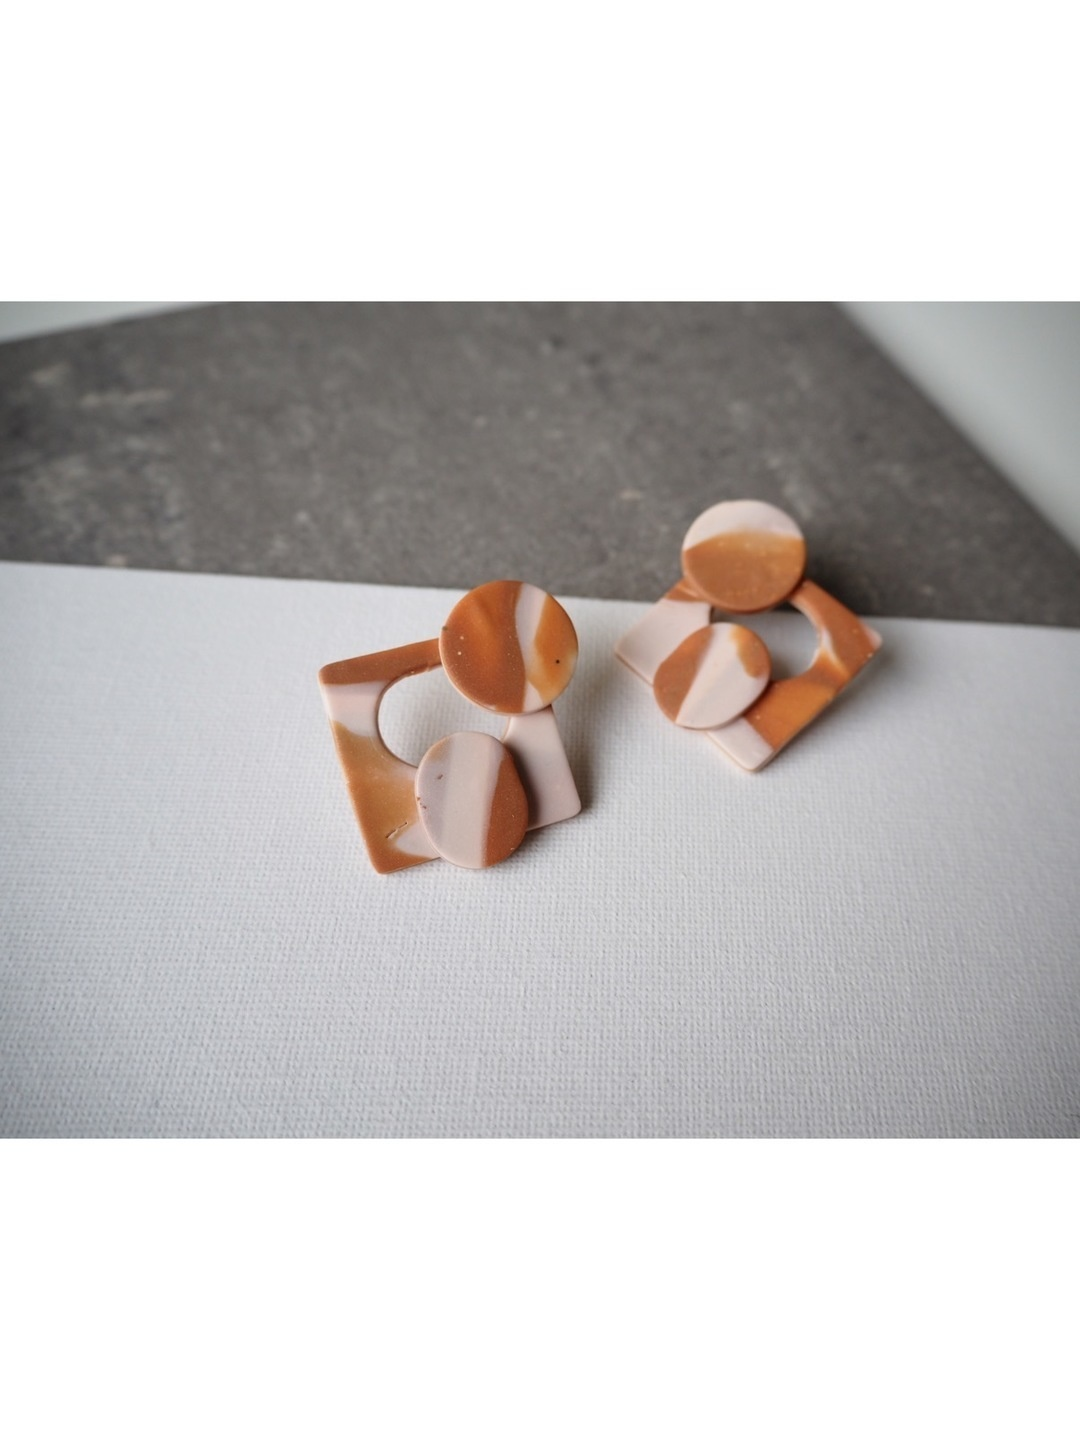 Women's jewellery & bracelets - CLAYDIDESIGN photo 1